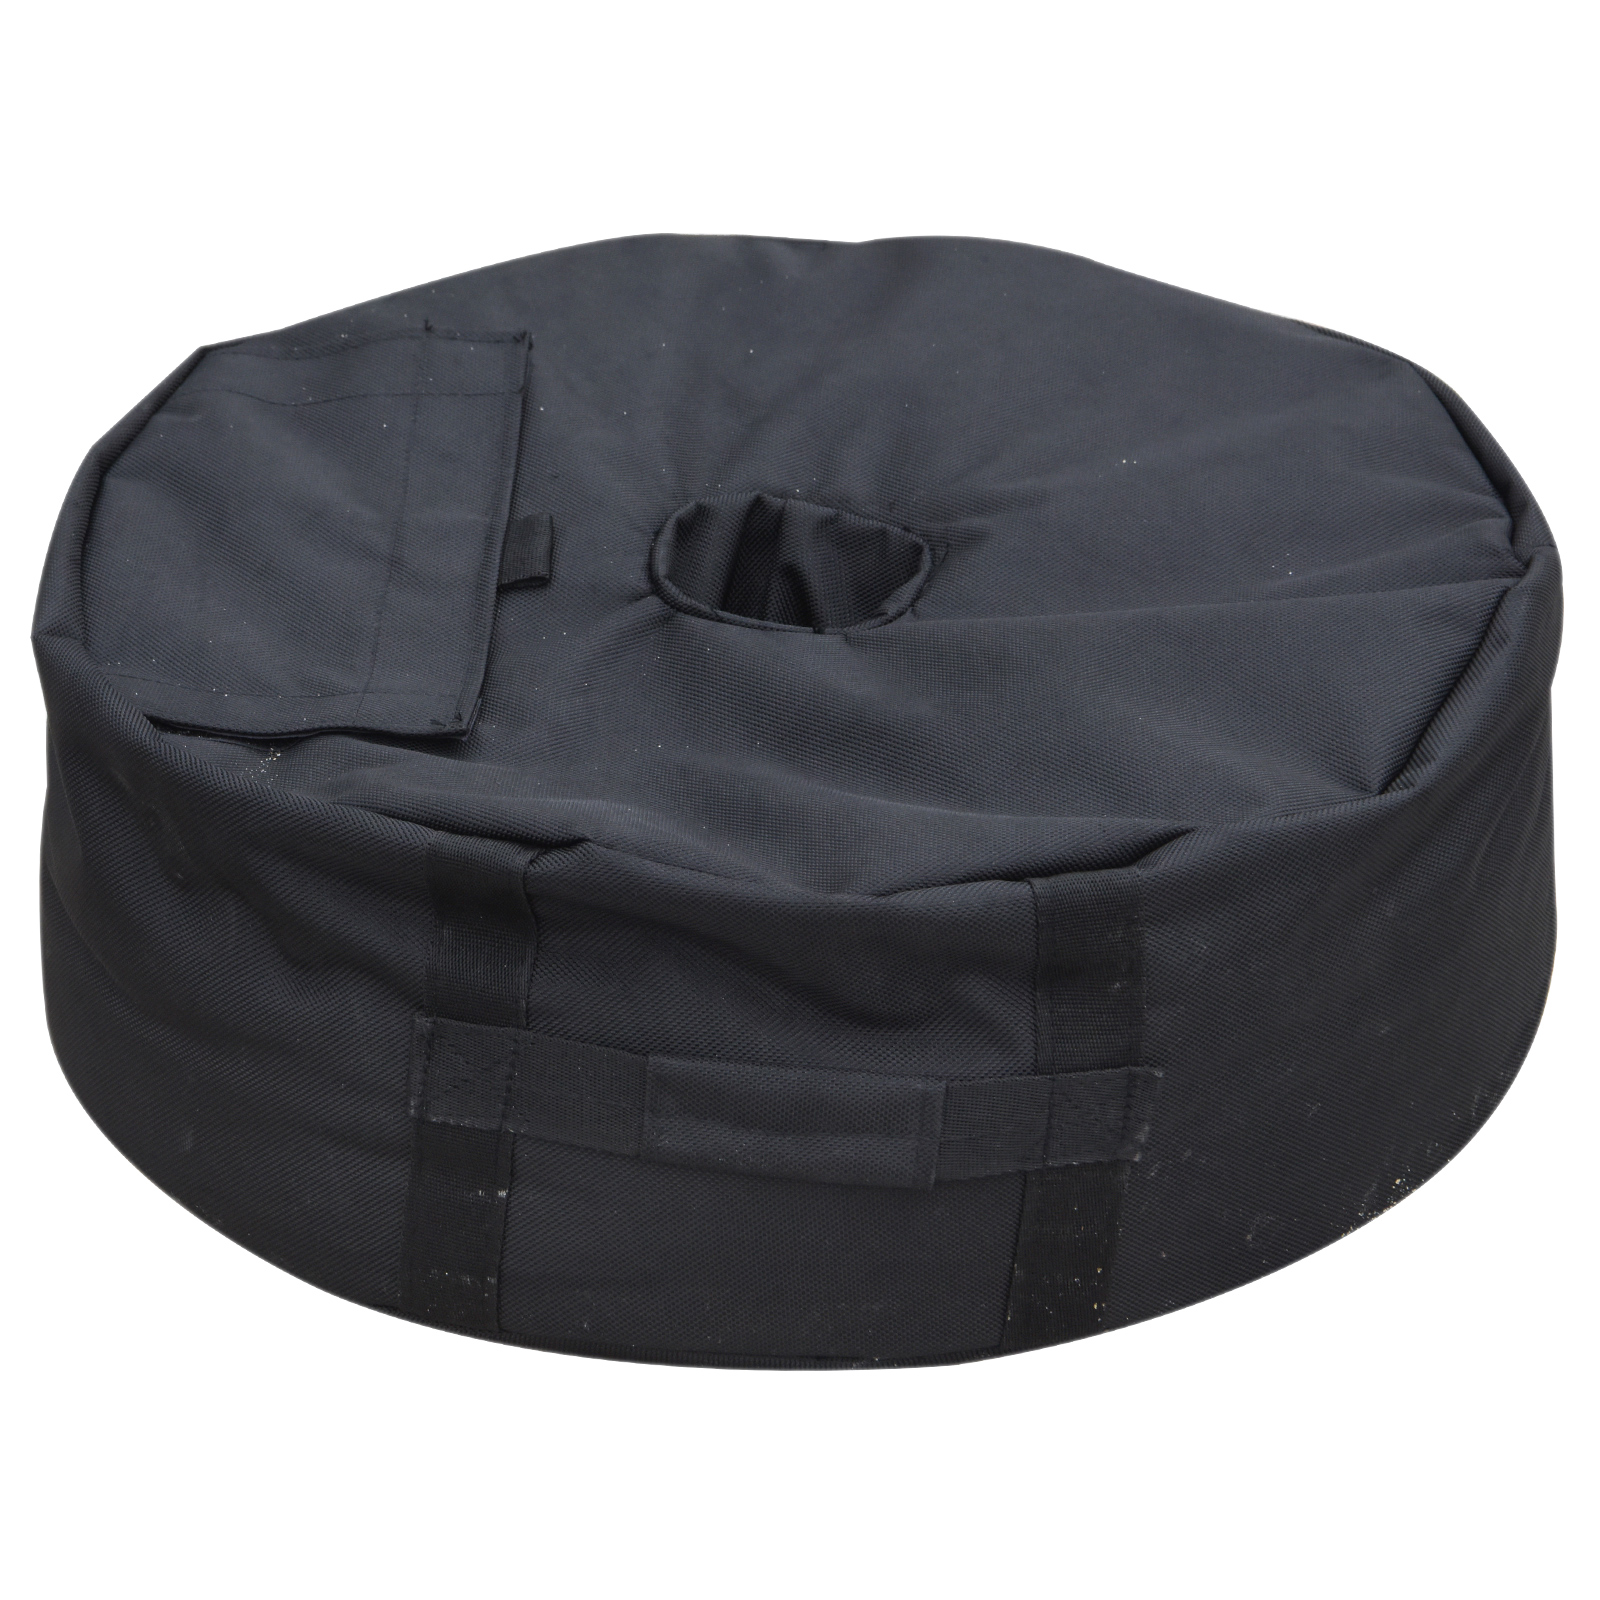 Outsunny Base For Umbrella Fillable With Sand Max. 40Kg For Parasols Diameter 3-6 Cm Oxford Fabric Φ48x18cm Black